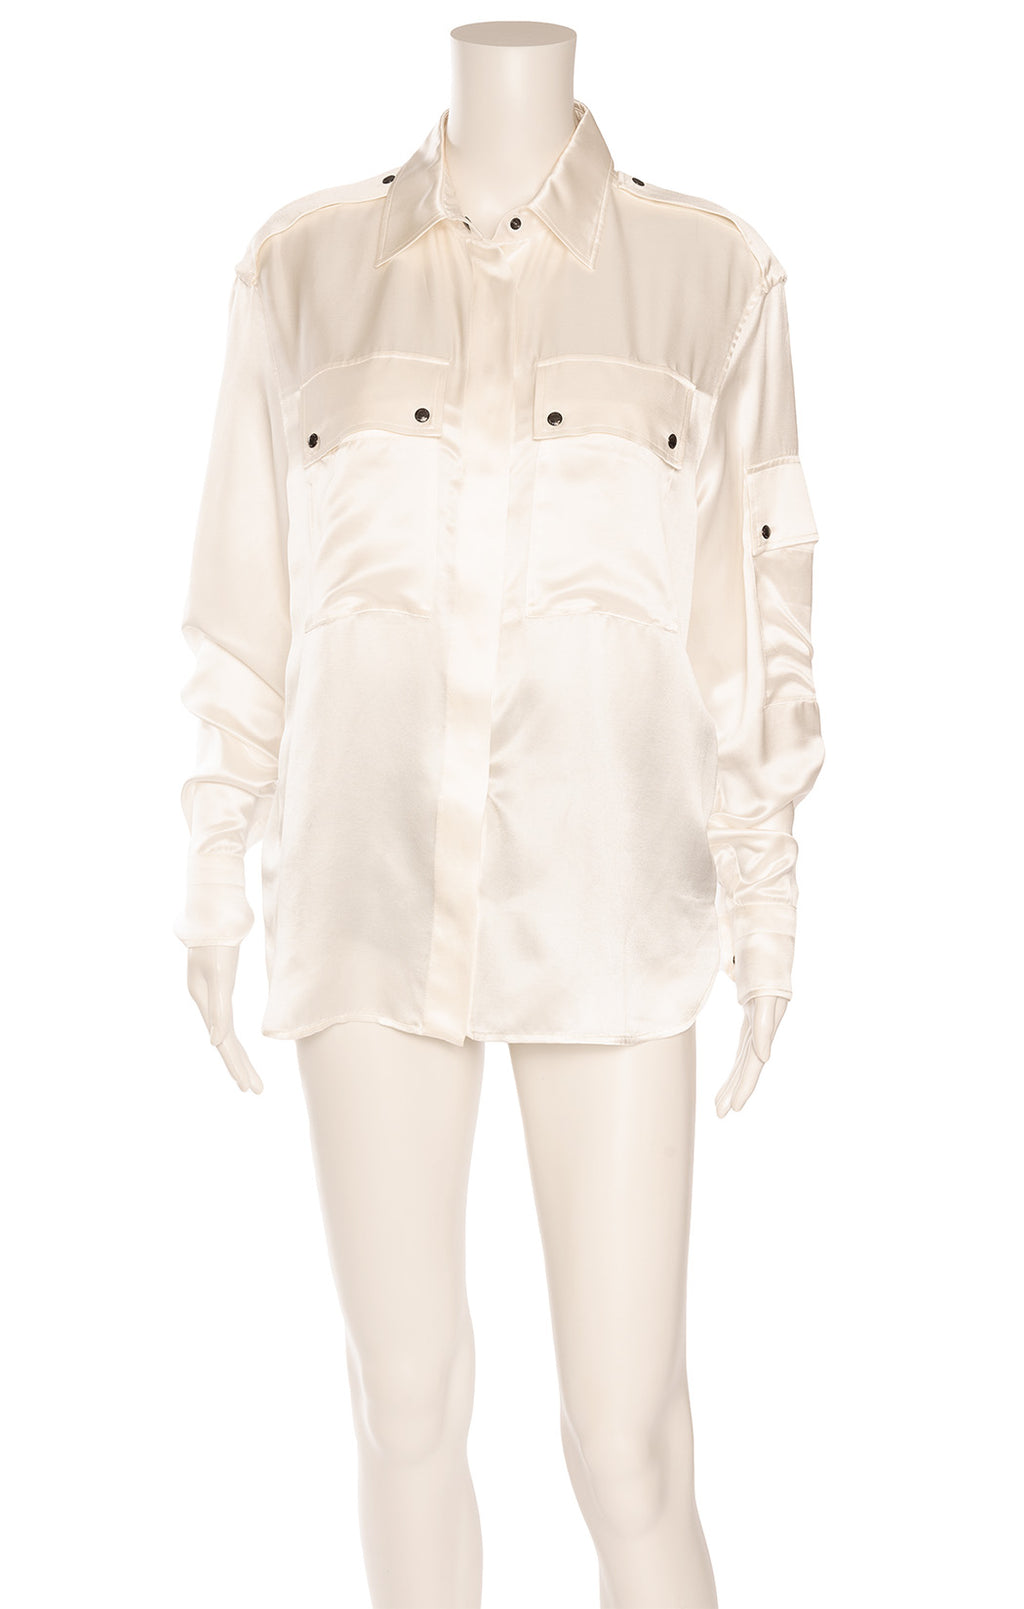 White button down shirt with epaulets at shoulders, patch bodice pockets, one side sleeve pocket and sheer back